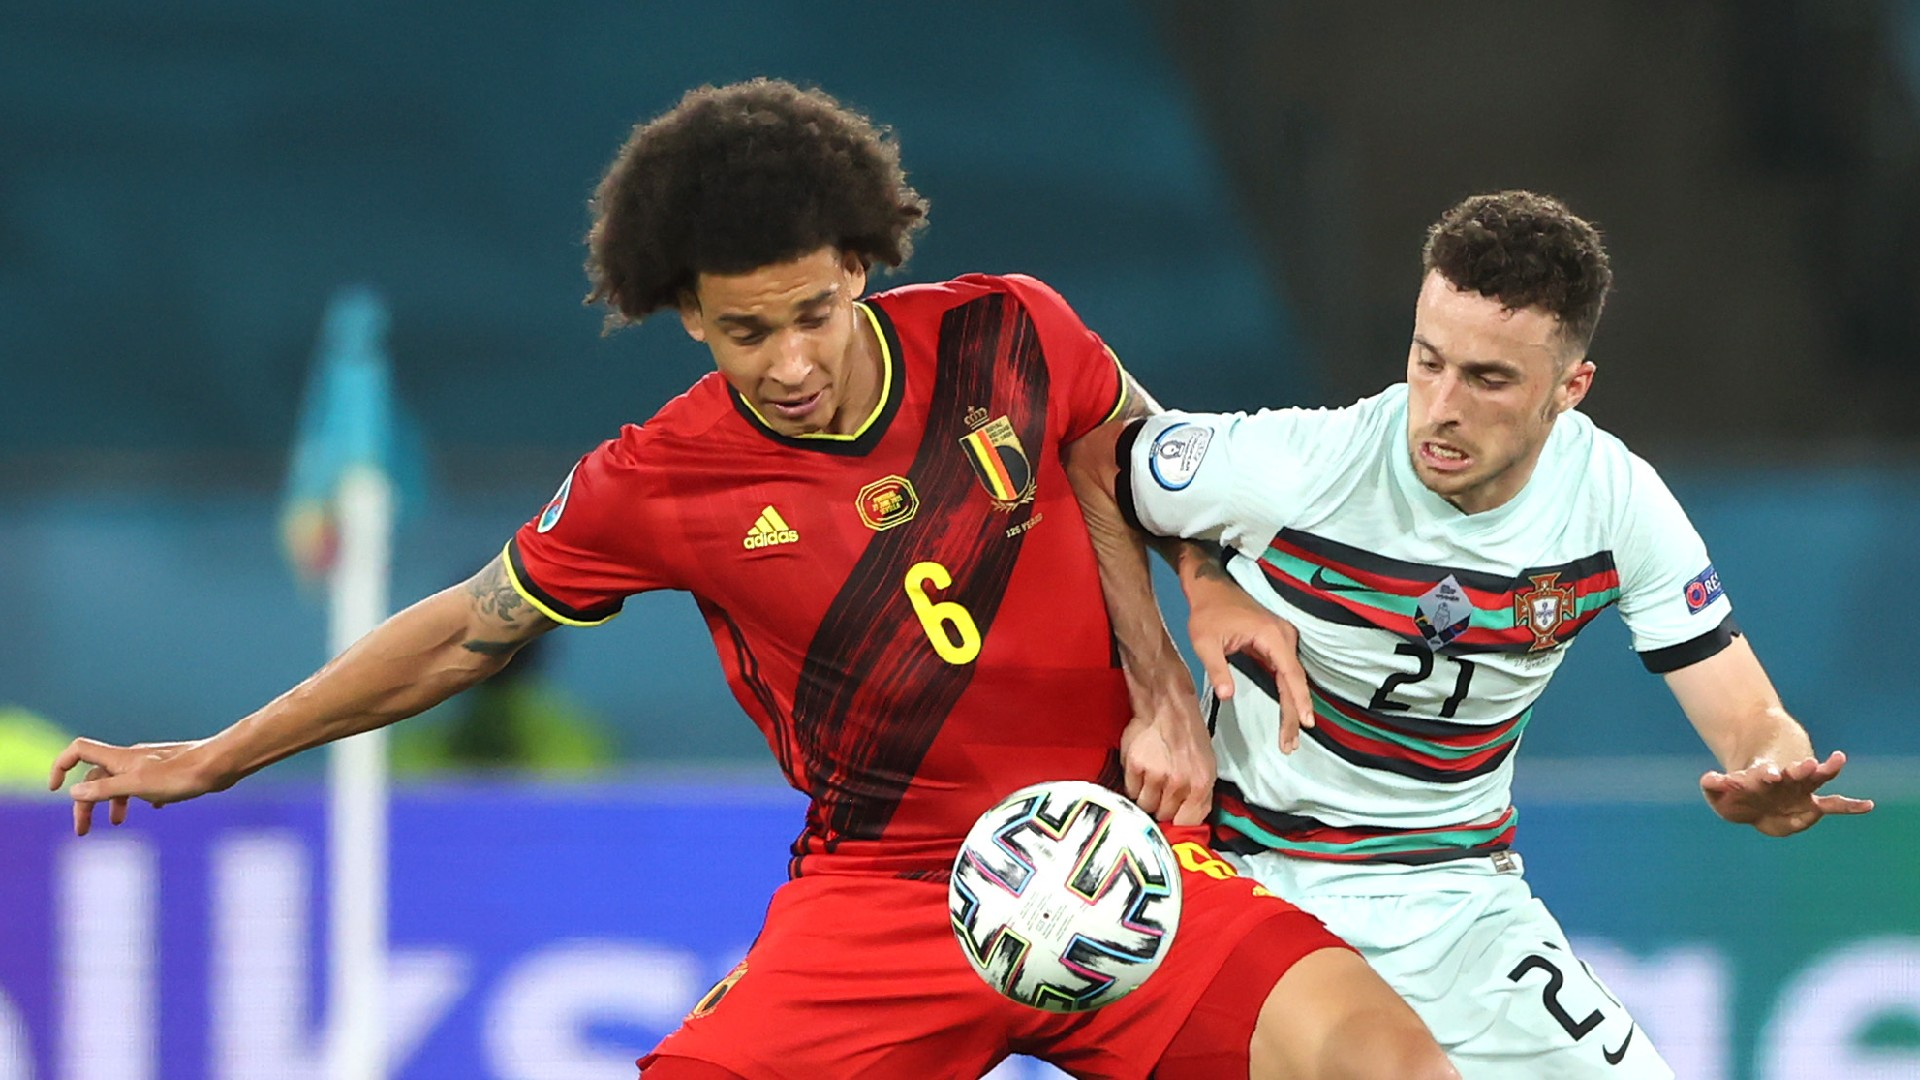 'We stopped playing against Portugal' - Belgium must be braver to beat Italy in Euro 2020 quarter-finals, says Witsel